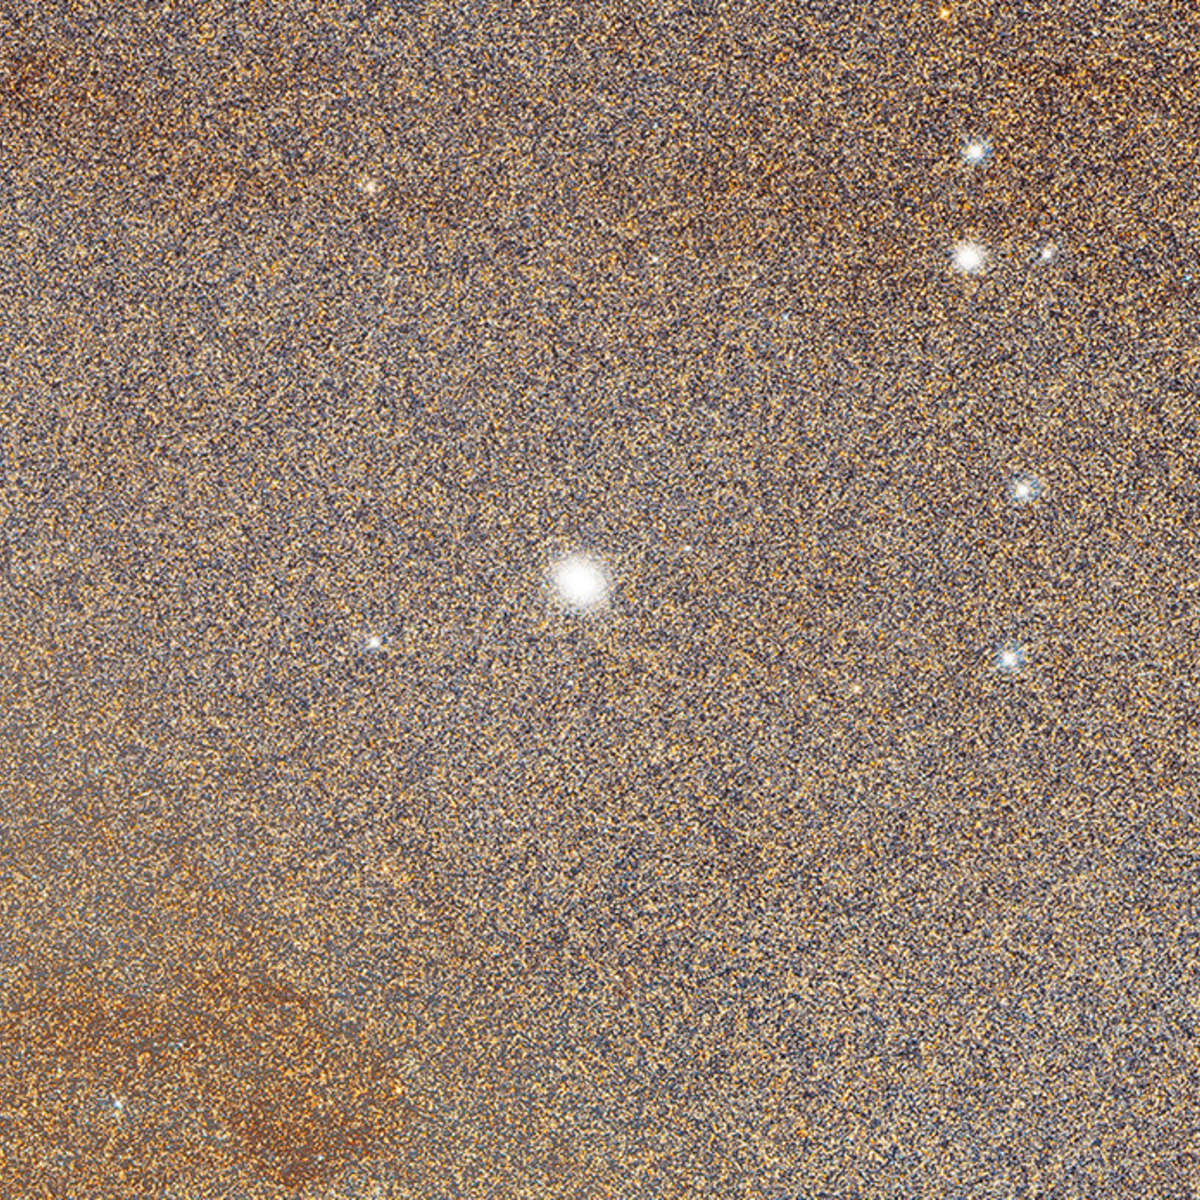 My God, it's full of stars! Detail of the Andromeda Galaxy taken by Hubble. Credit: NASA, ESA, J. Dalcanton, B.F. Williams, and L.C. Johnson (University of Washington), the PHAT team, and R. Gendler